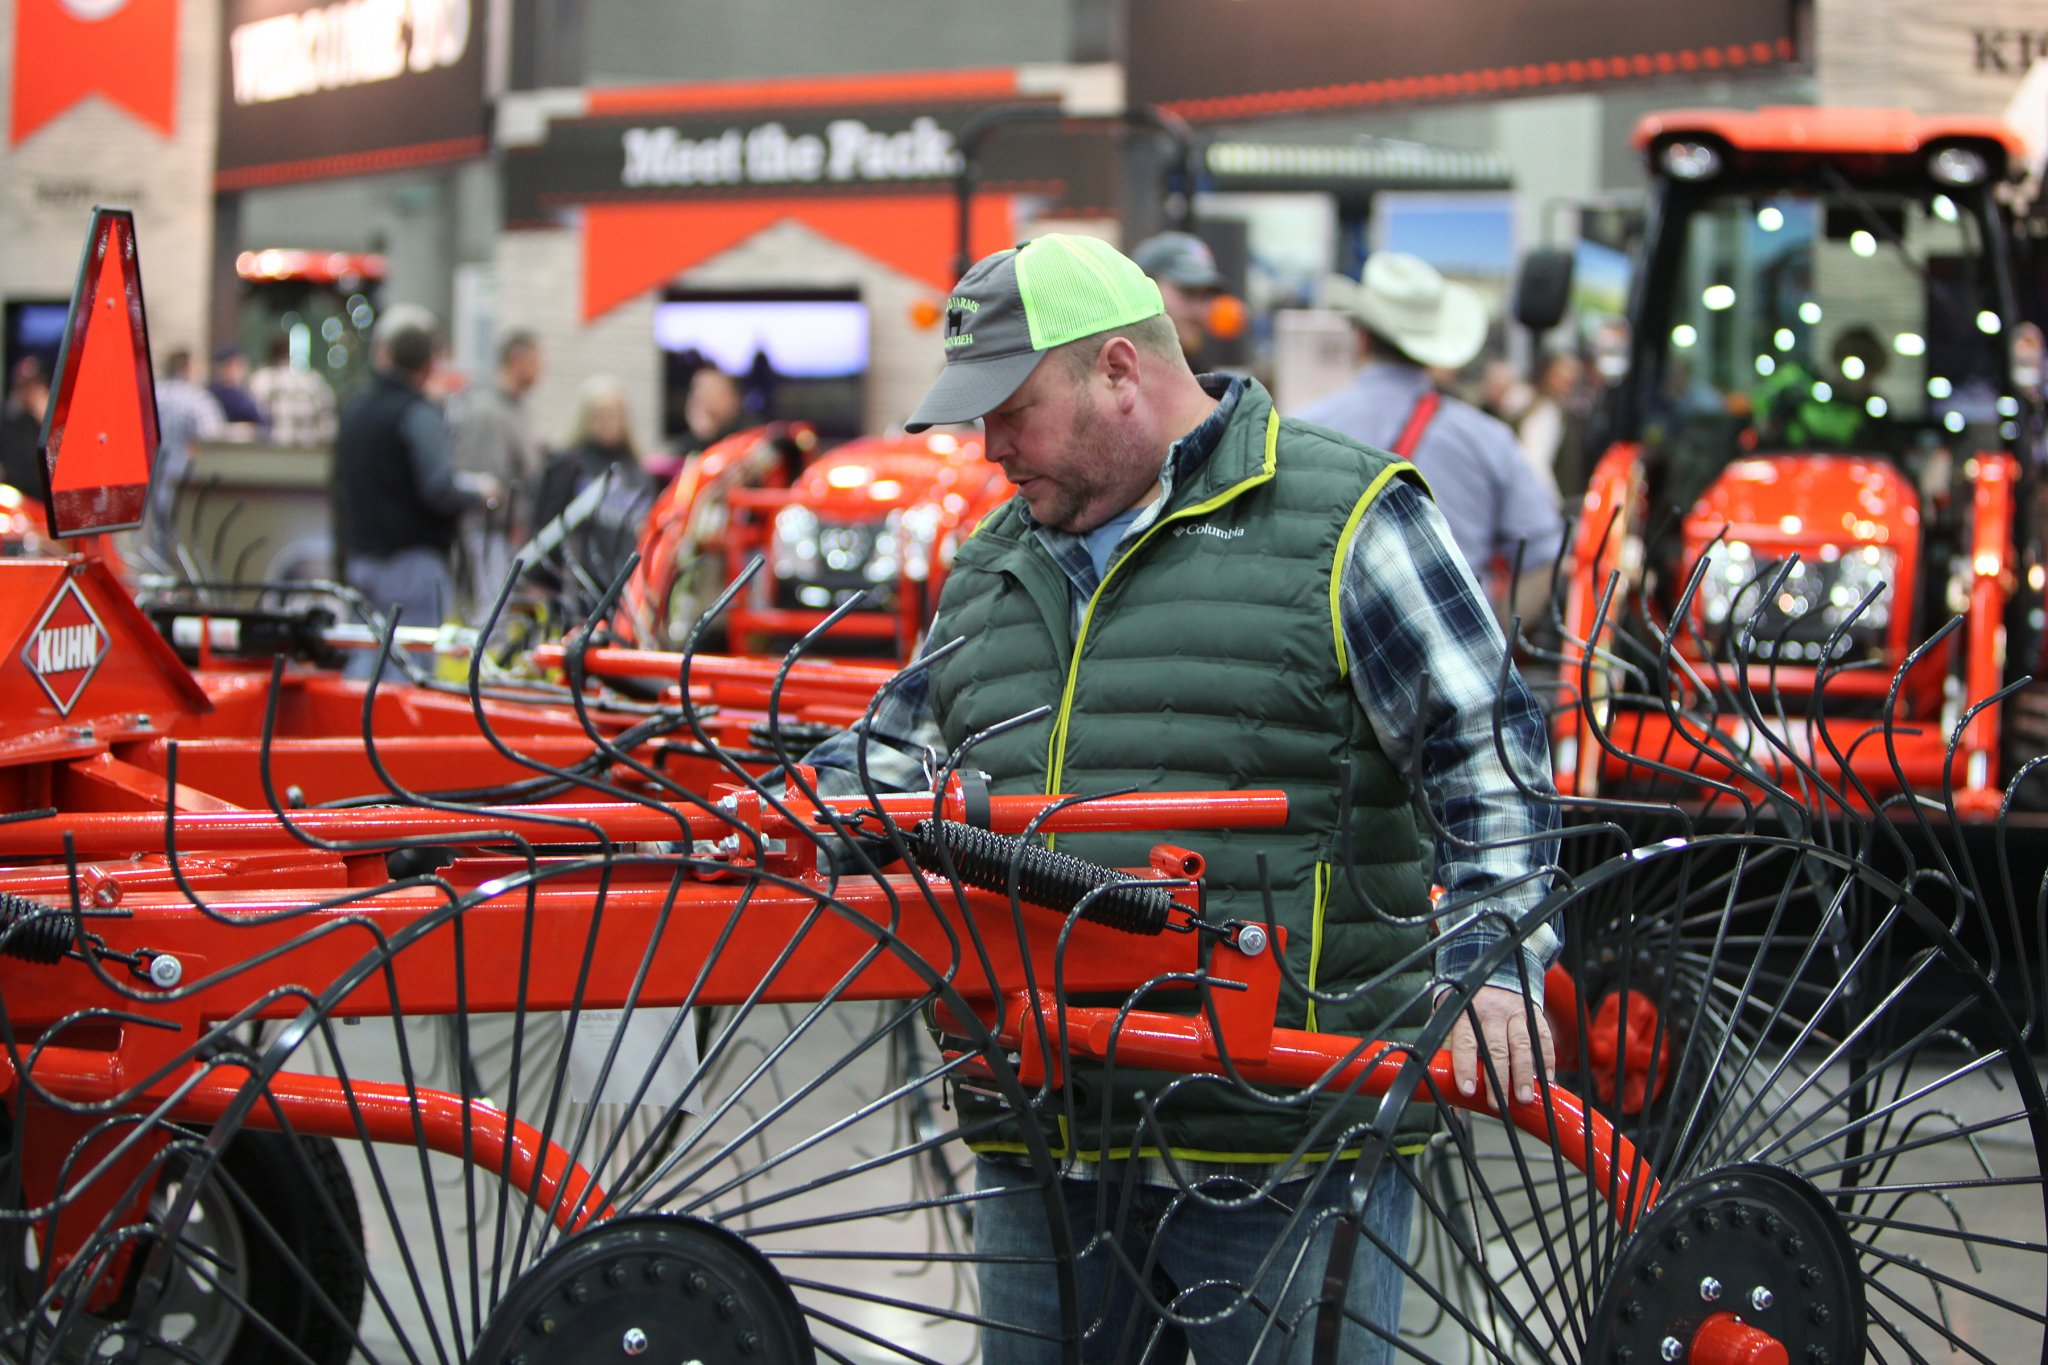 2021 National Farm Machinery Show And Championship Tractor Pull Dates Announced Kentucky Living